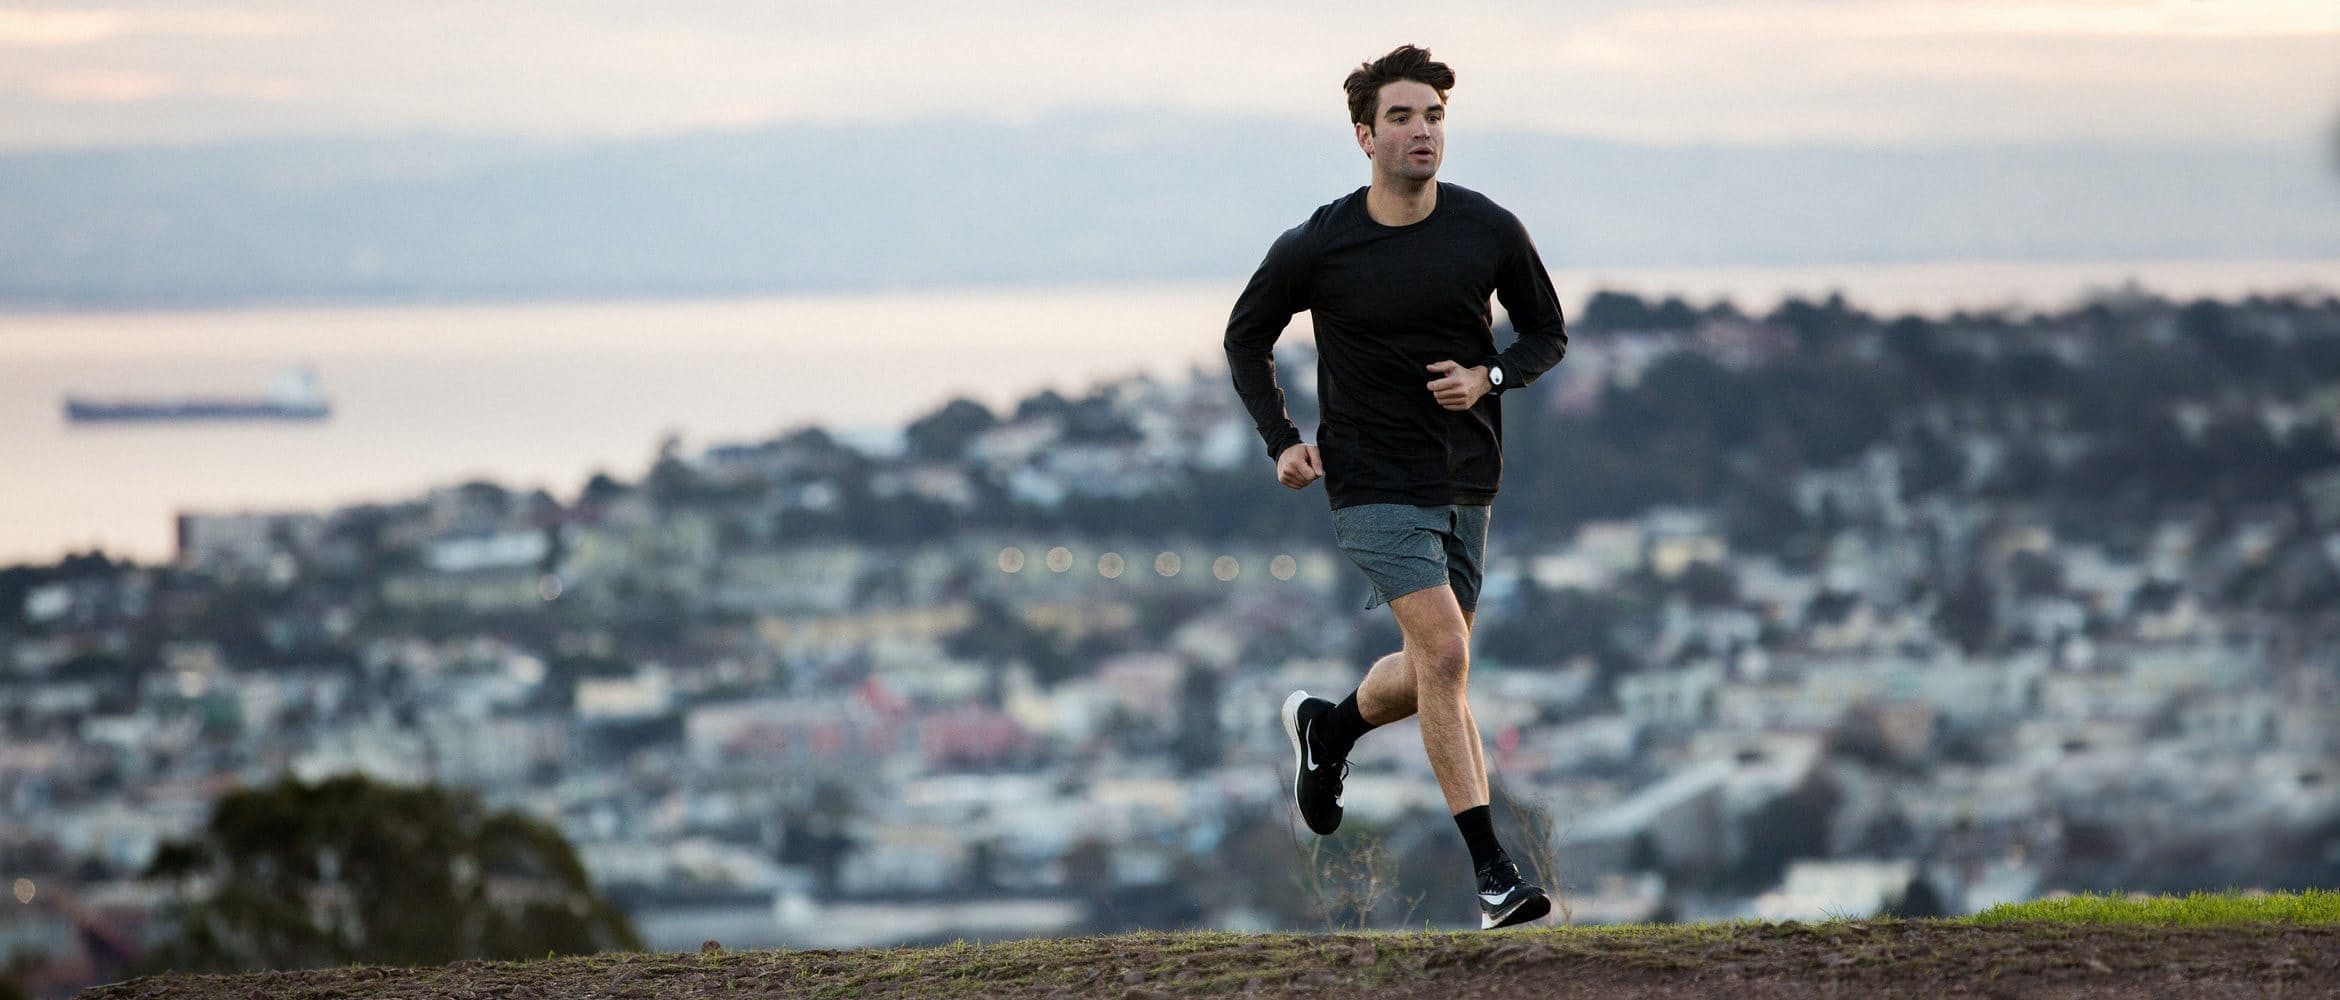 Featured 2x workout gear for every kind of athlete.jpg?ixlib=rails 2.1